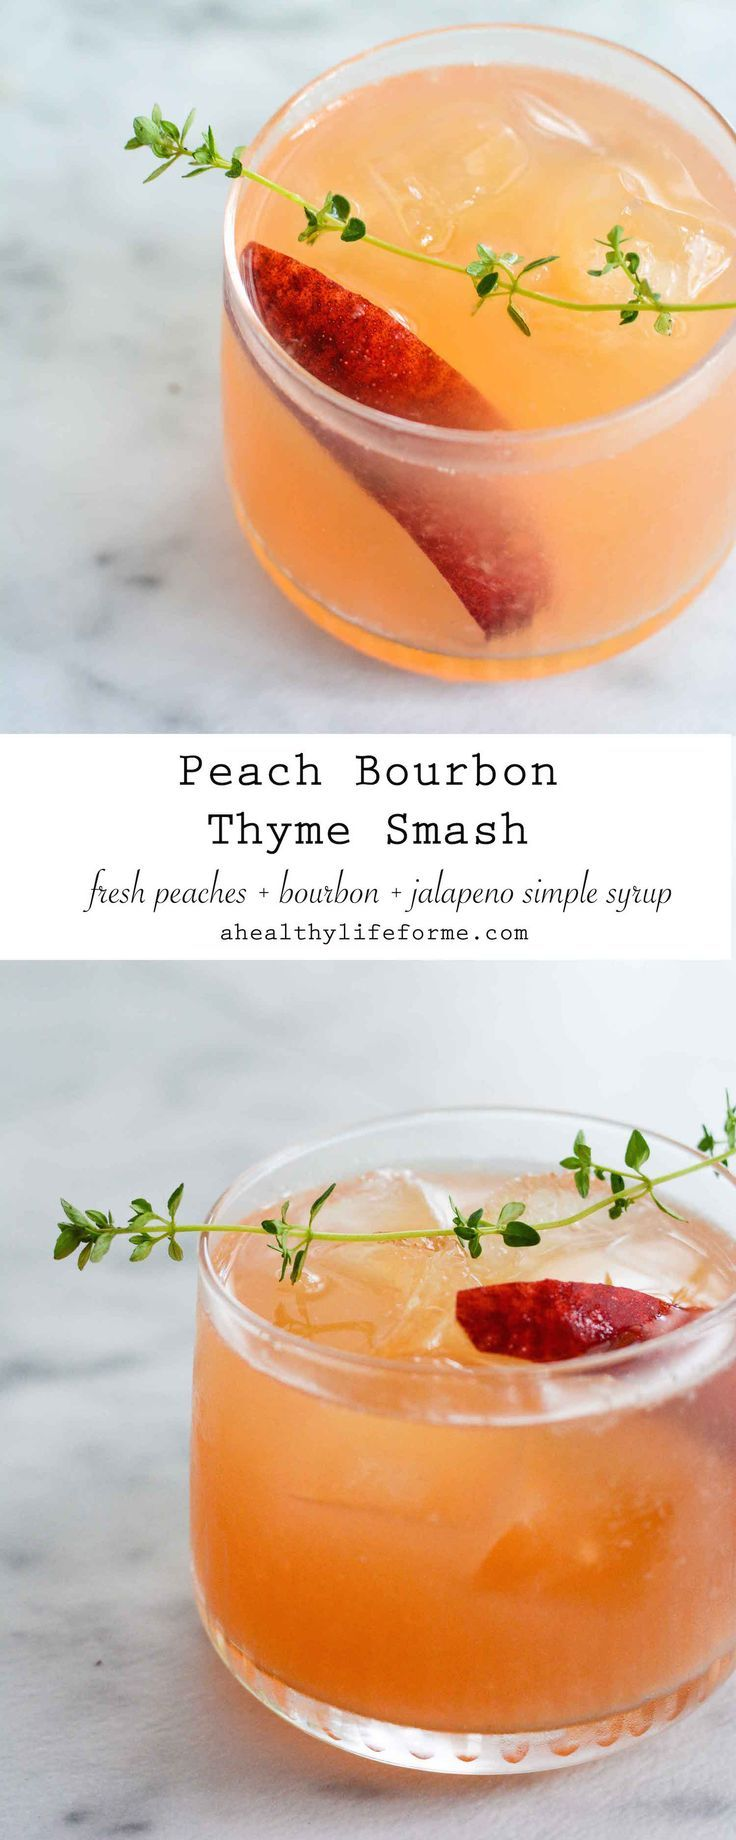 Peach Bourbon Thyme Smash - A Healthy Life For Me